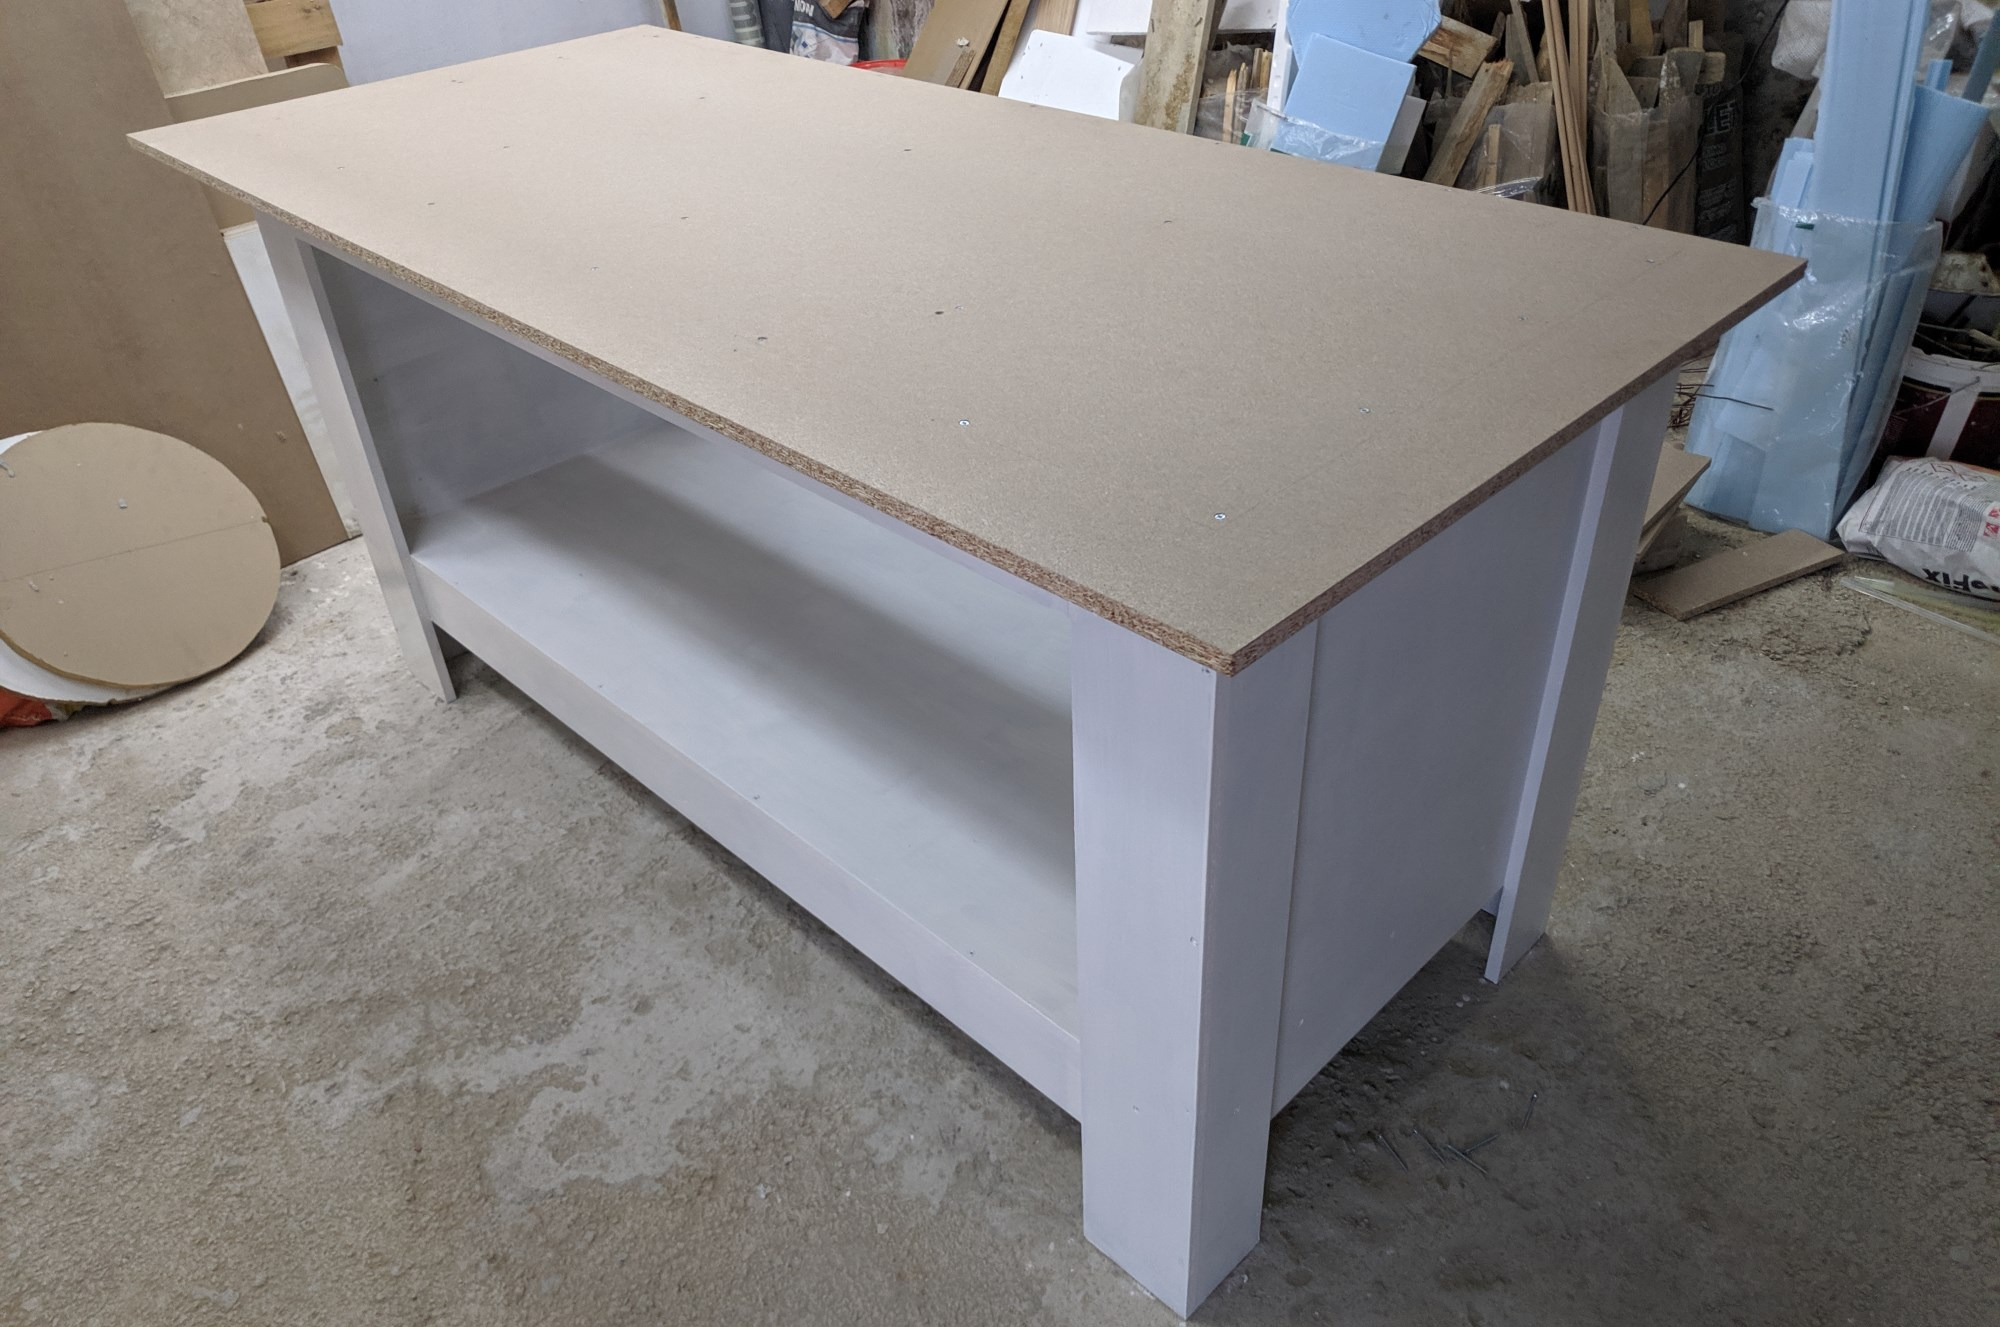 The use of particleboard in the workshop